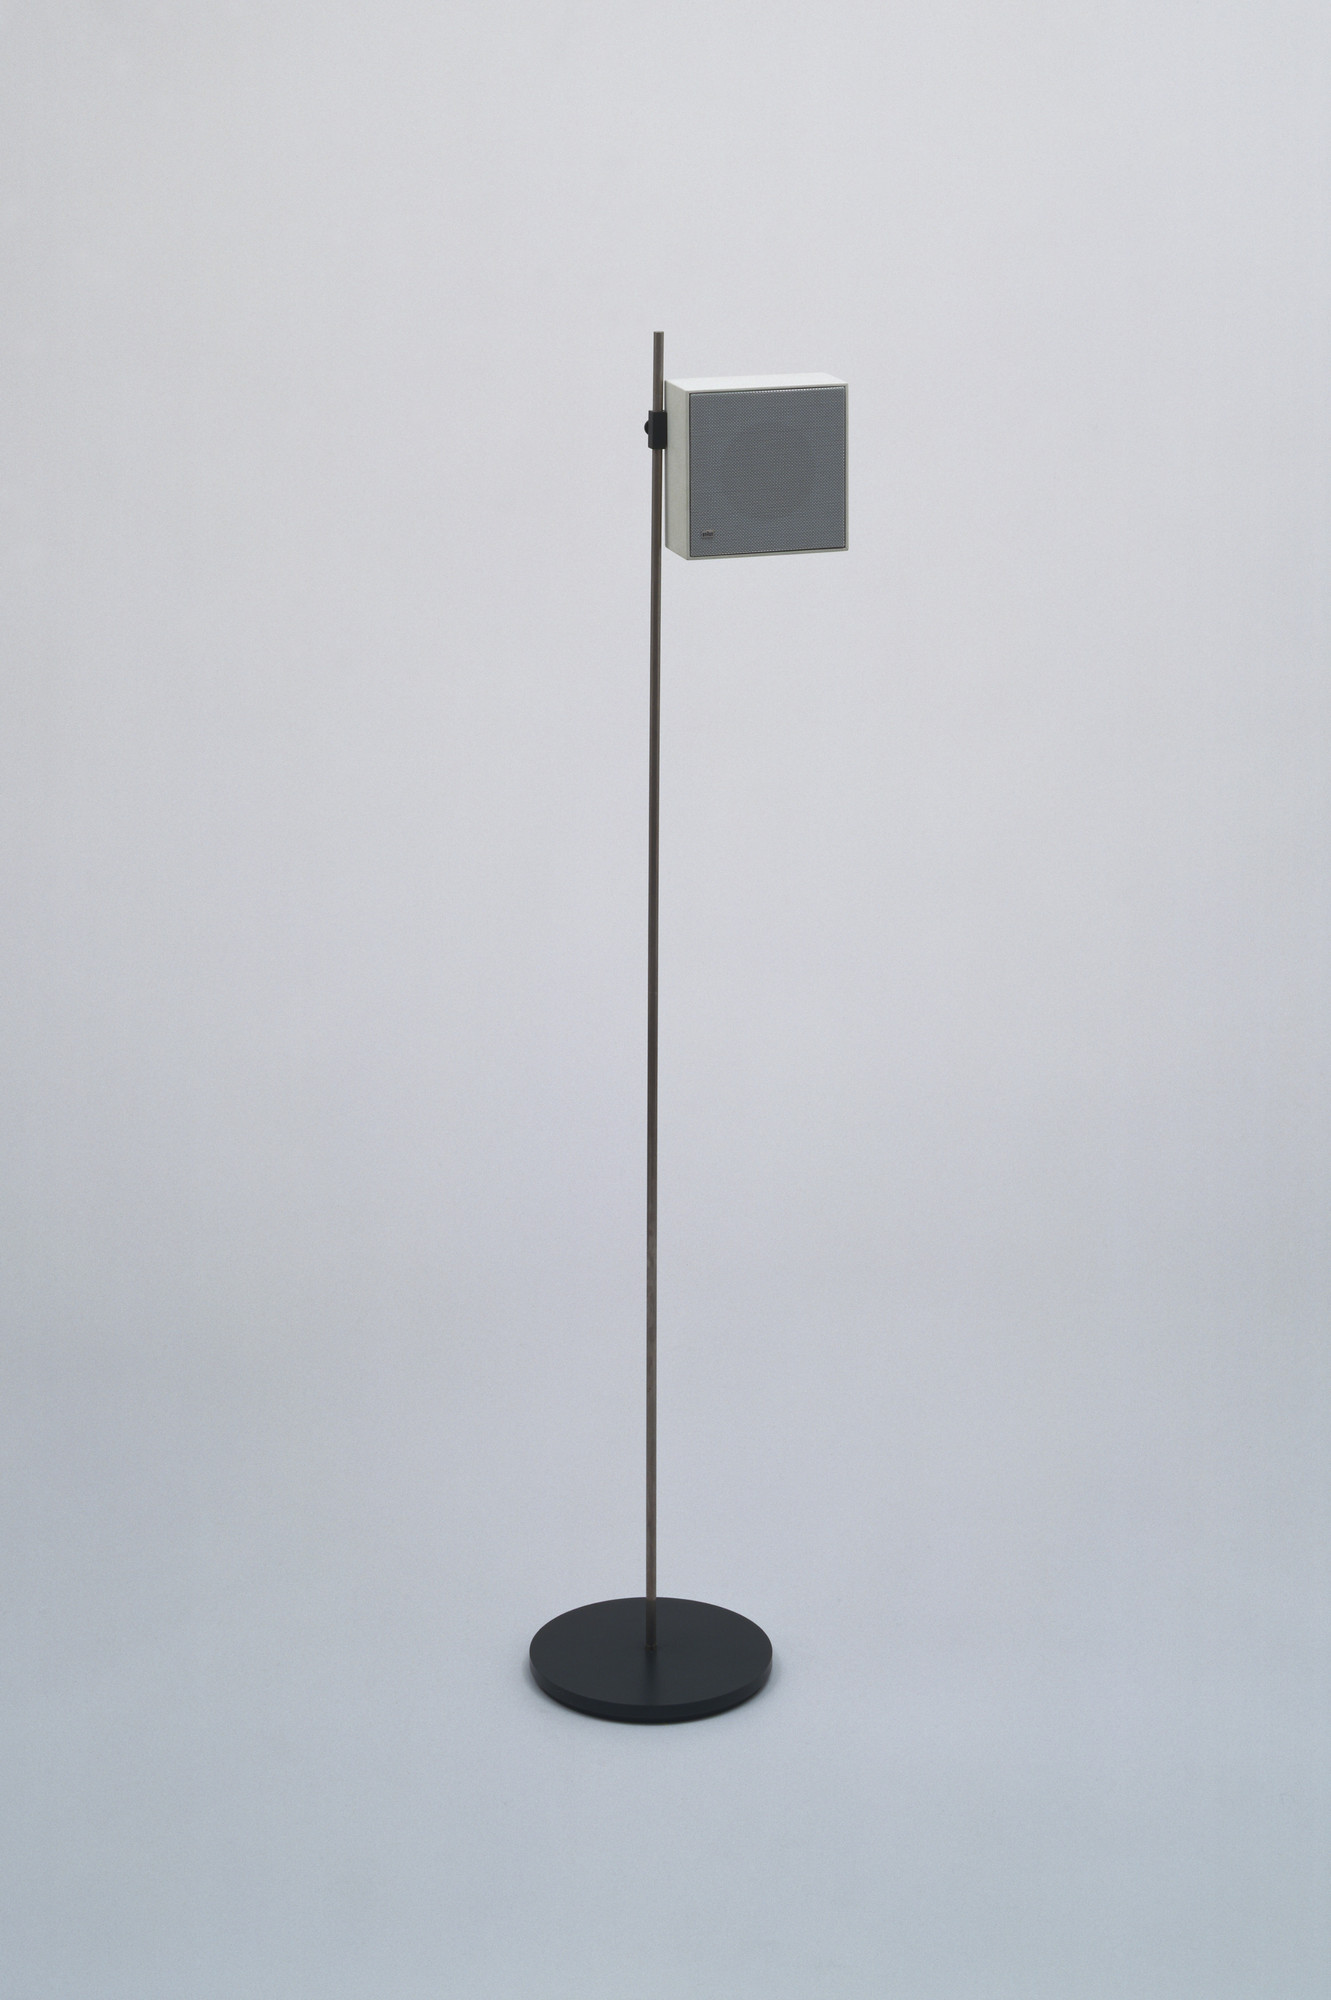 Dieter Rams. Speaker with Stand (model L 02). 1958